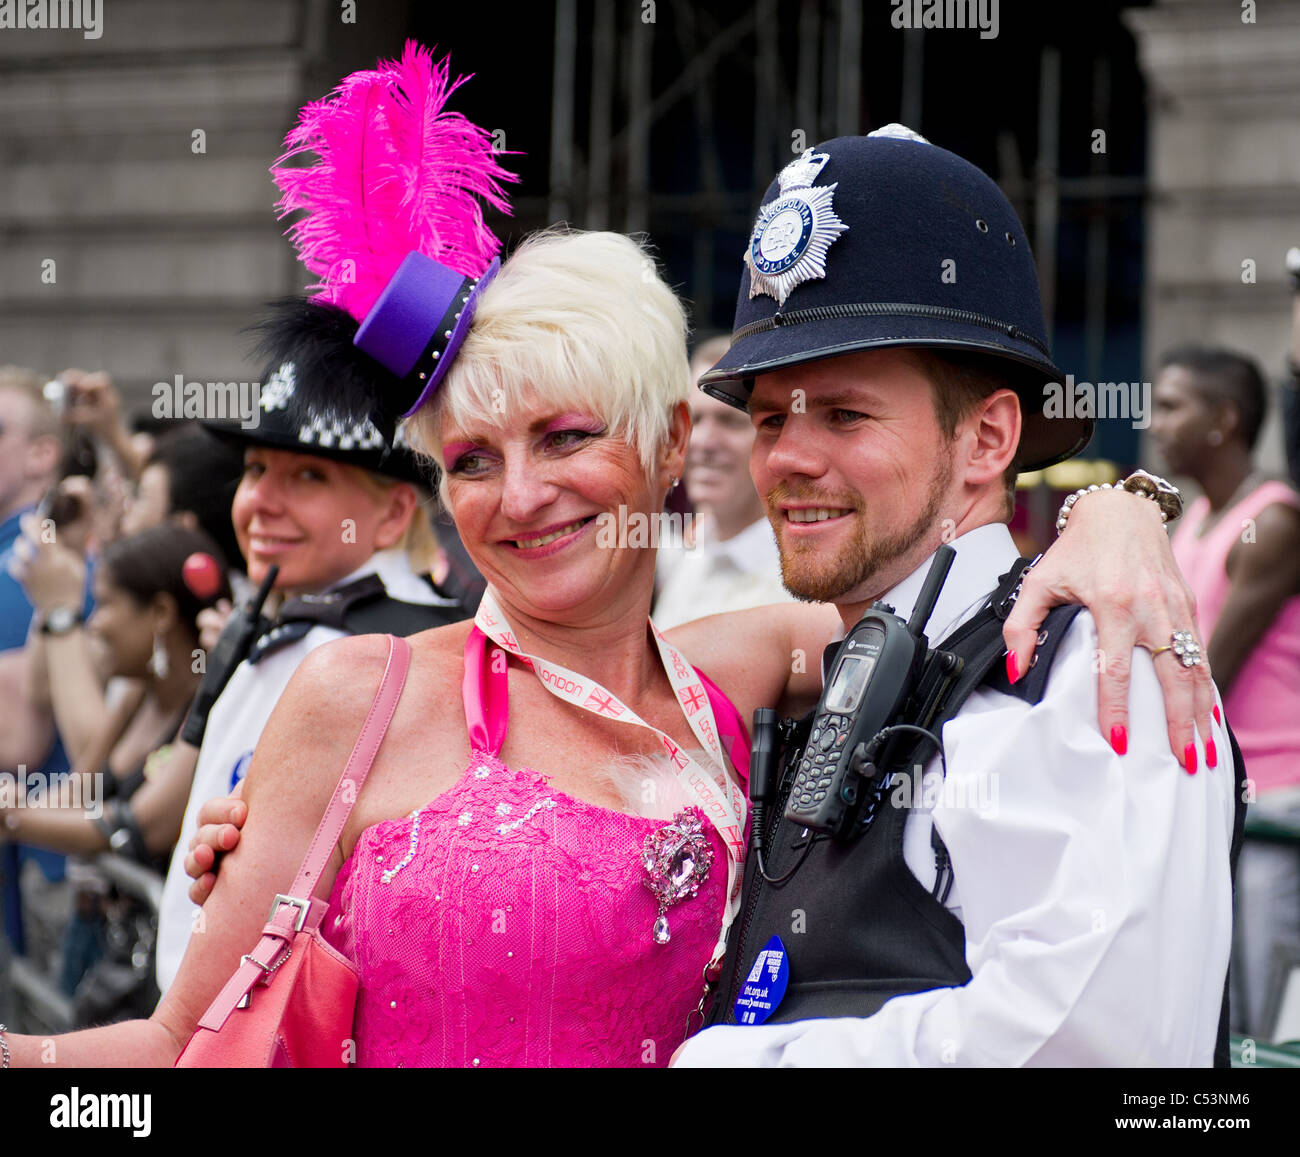 A Gay Pride participant embracing a London police officer. - Stock Image